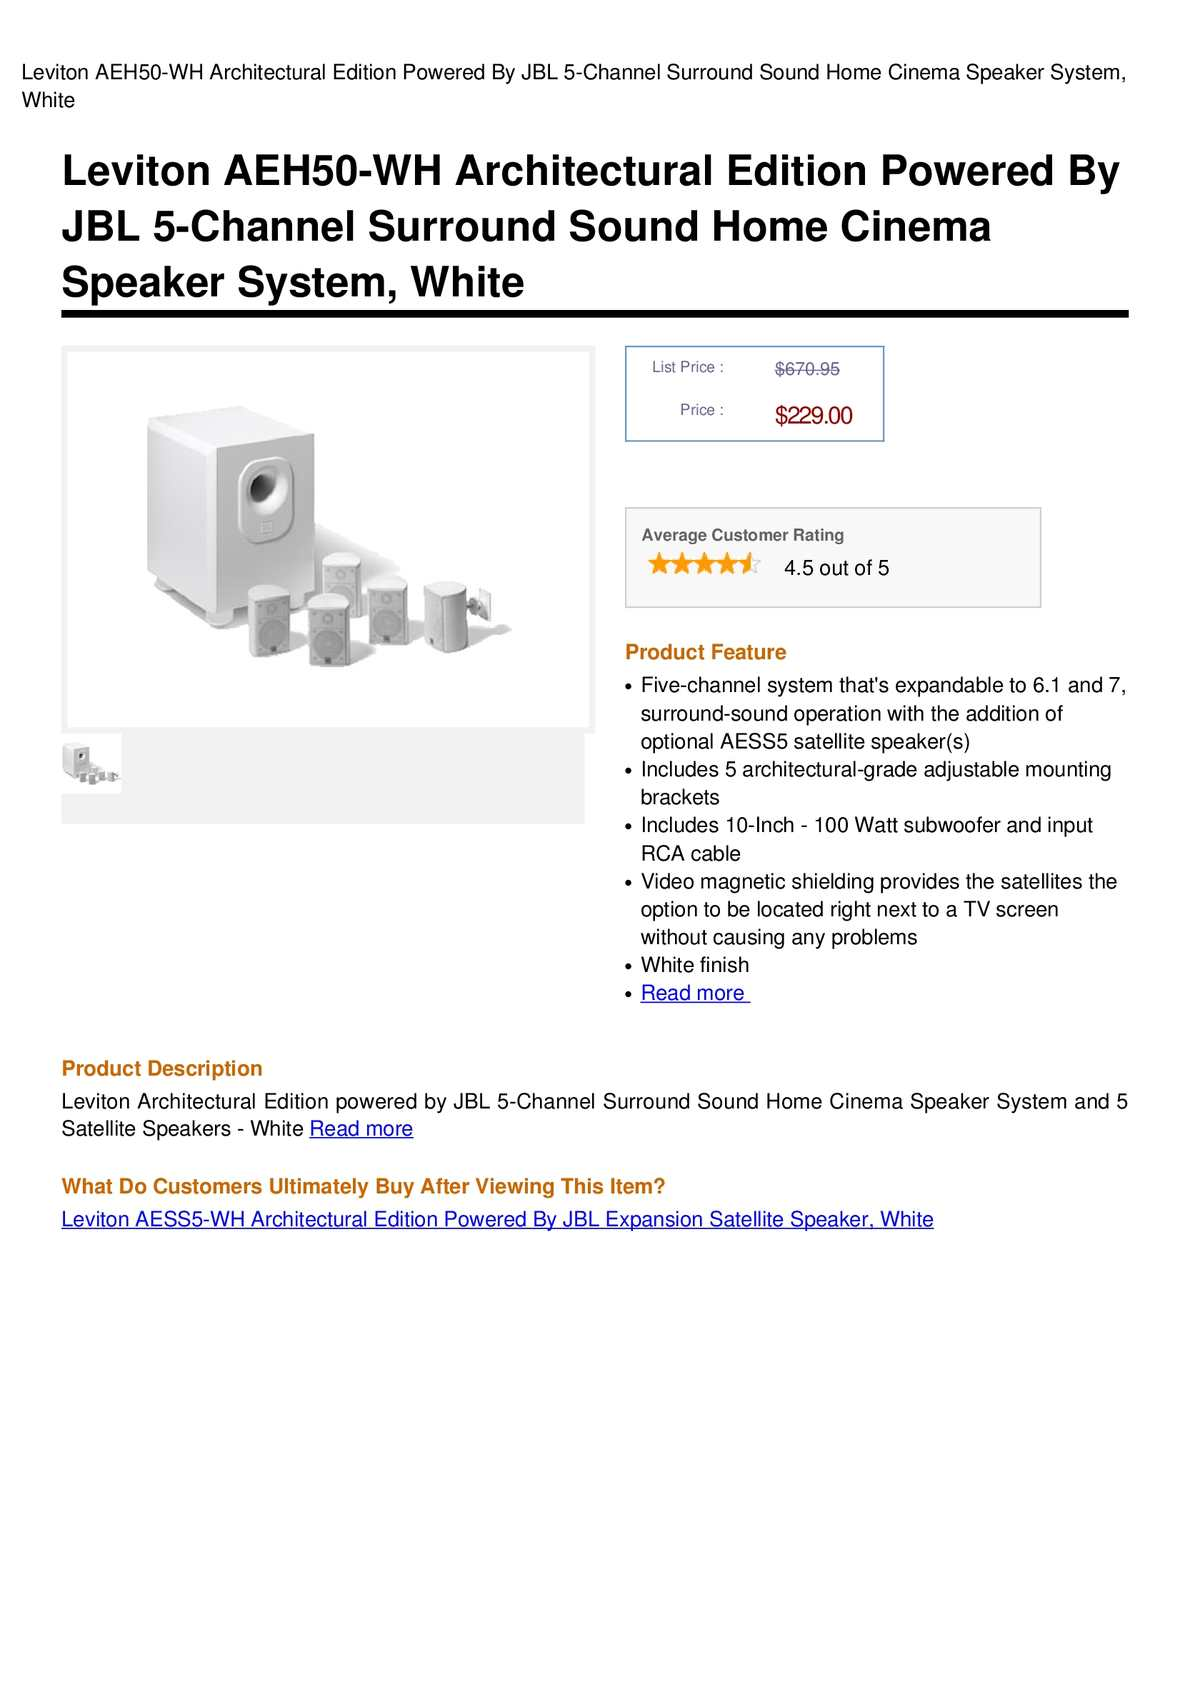 Calaméo leviton aeh50-wh architectural edition powered by jbl 5.